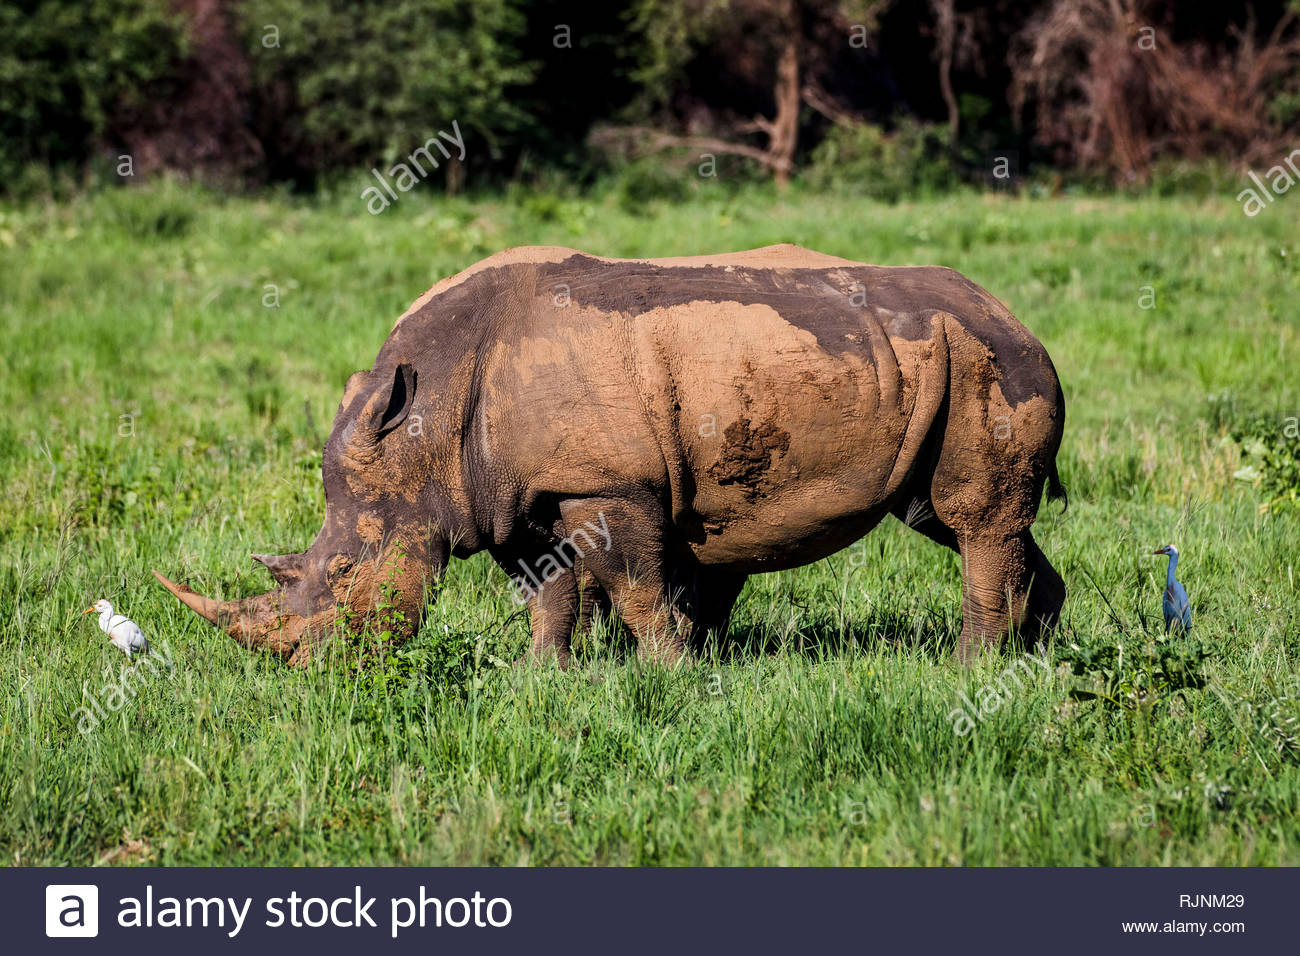 White rhino, covered in mud, eating grass in City of Tshwane, Gauteng, South Africa - Stock Image